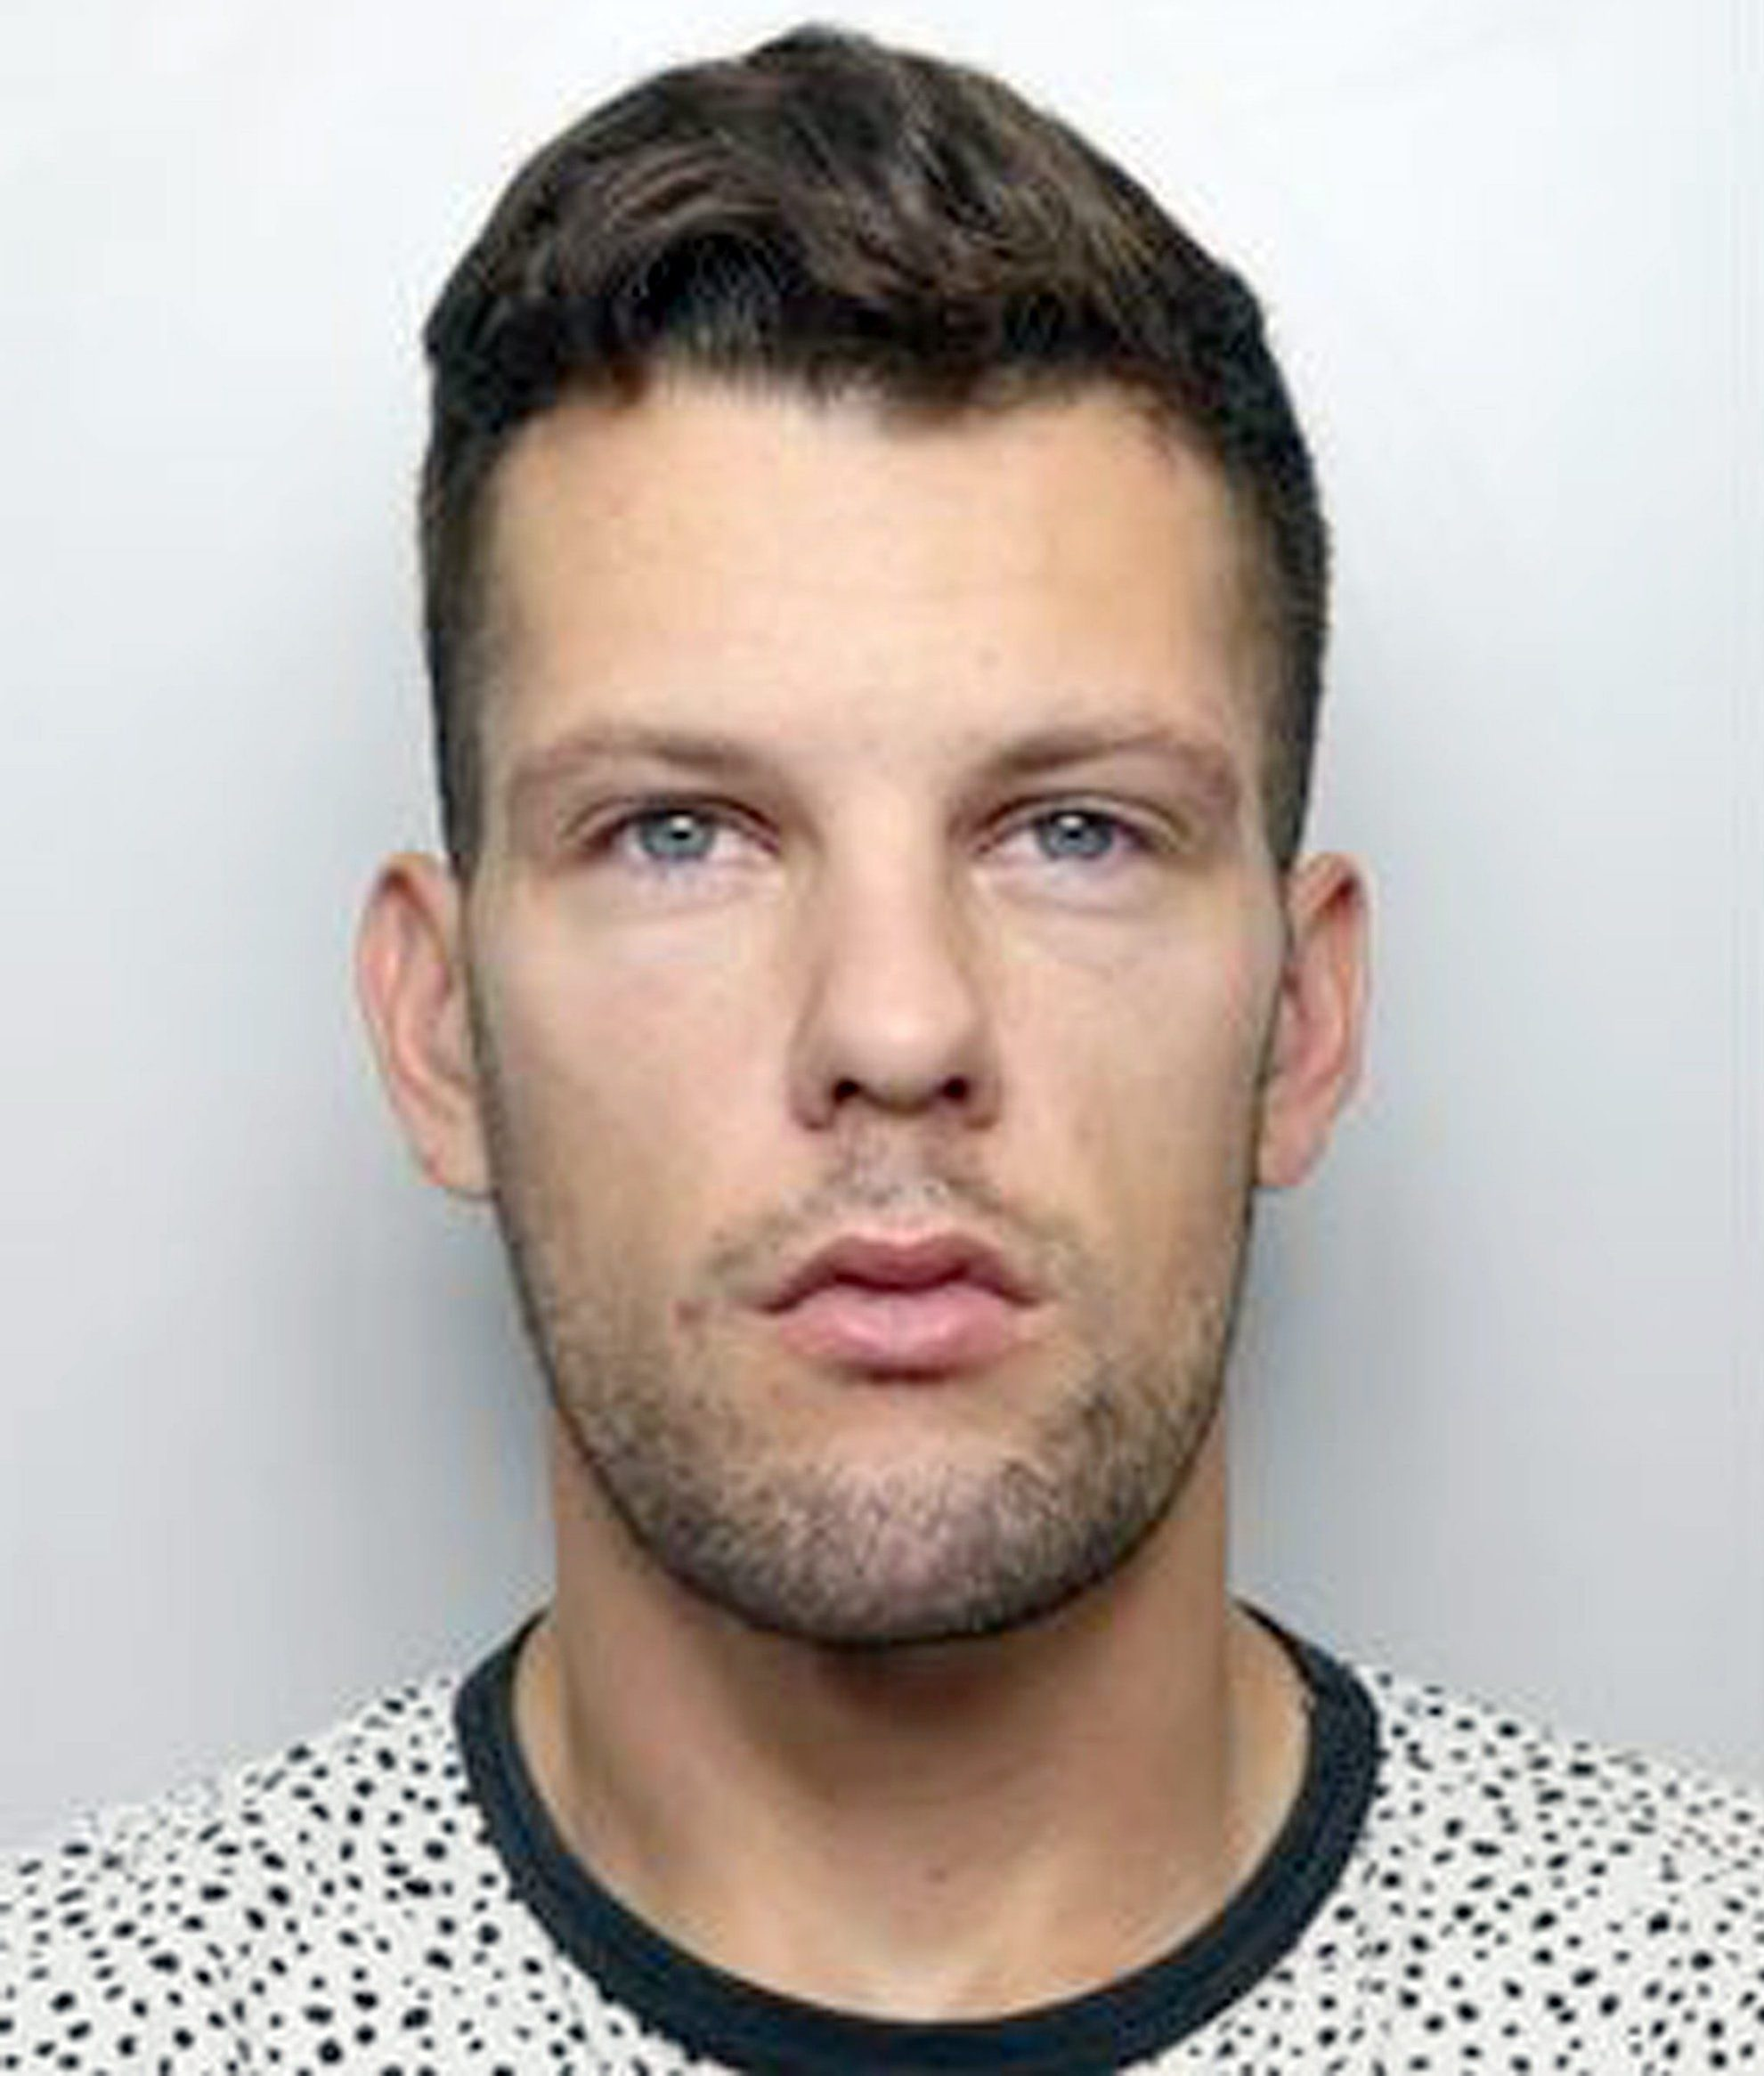 INS News Agency Ltd 13/10/2016 A train passenger who accused a man of looking at his girlfriend thought he had killed someone after he deliberately ran him over after getting off the train, was starting a jail sentence today/yesterday (Thurs). William Whitehorn raced towards the man who he had argued with in a carriage after he spotted him at the train station where they both had got off the train. See copy INSwhite